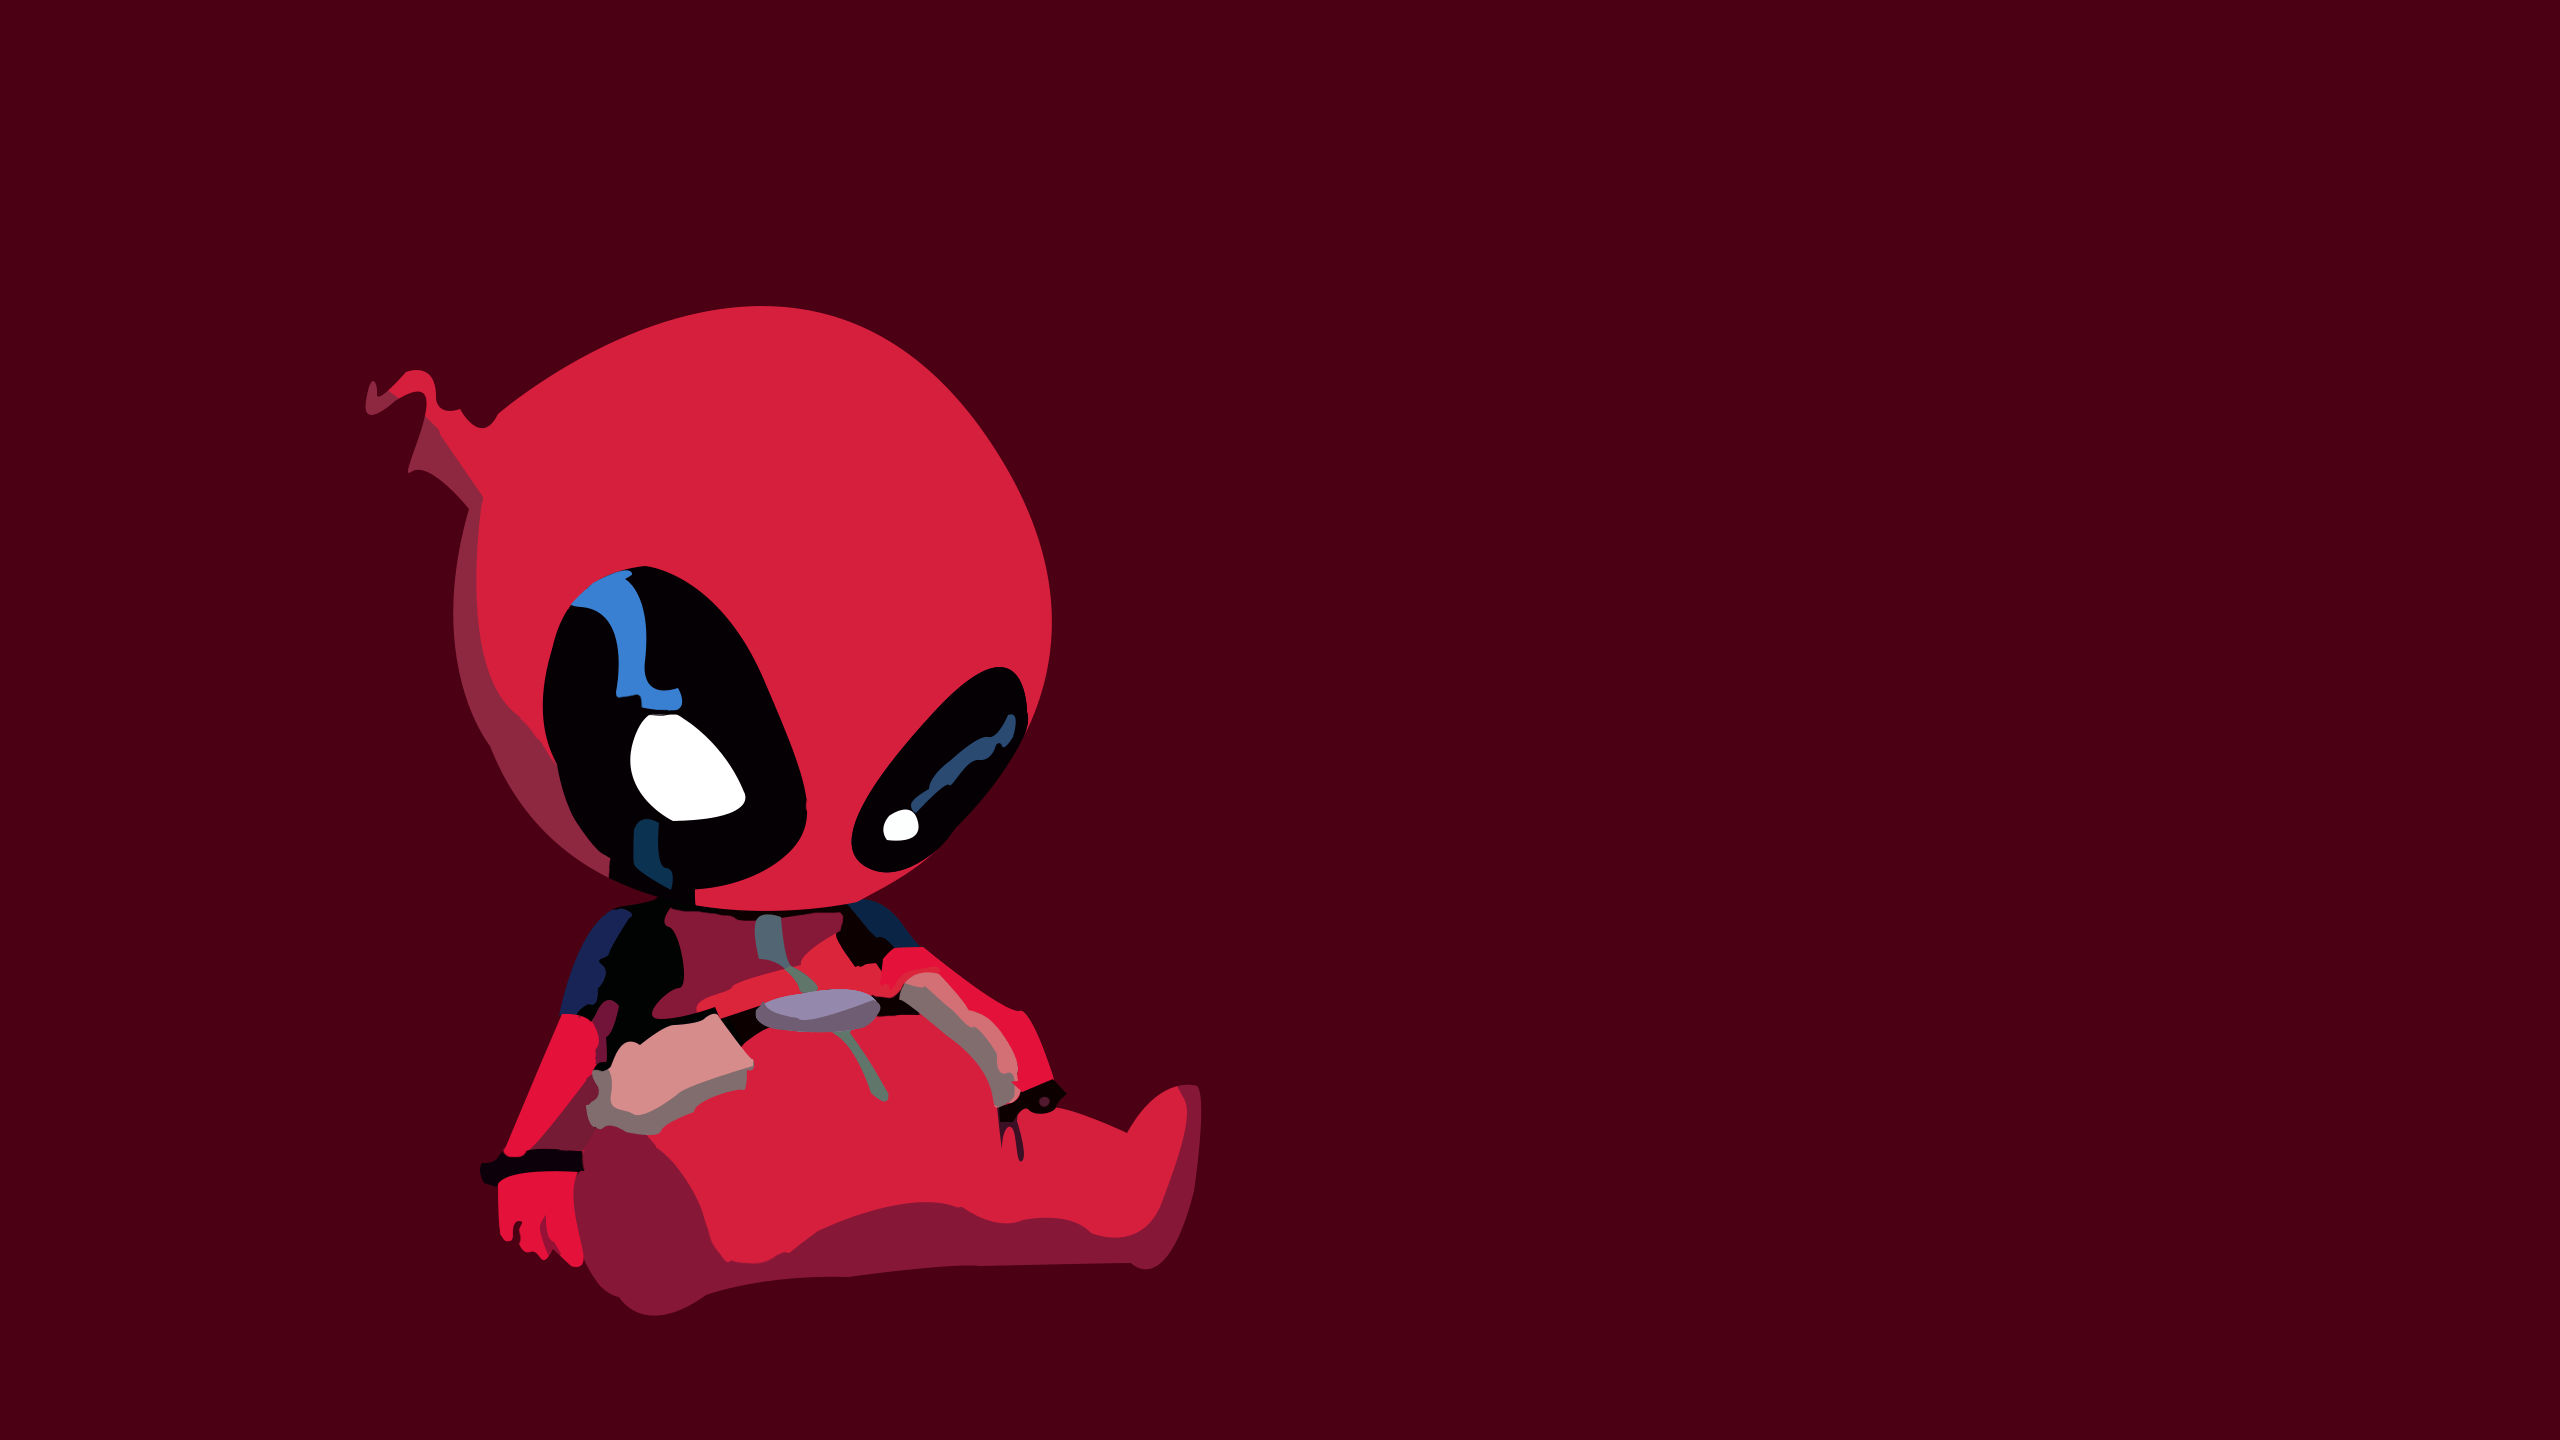 Deadpool Wallpapers Group with 89 items